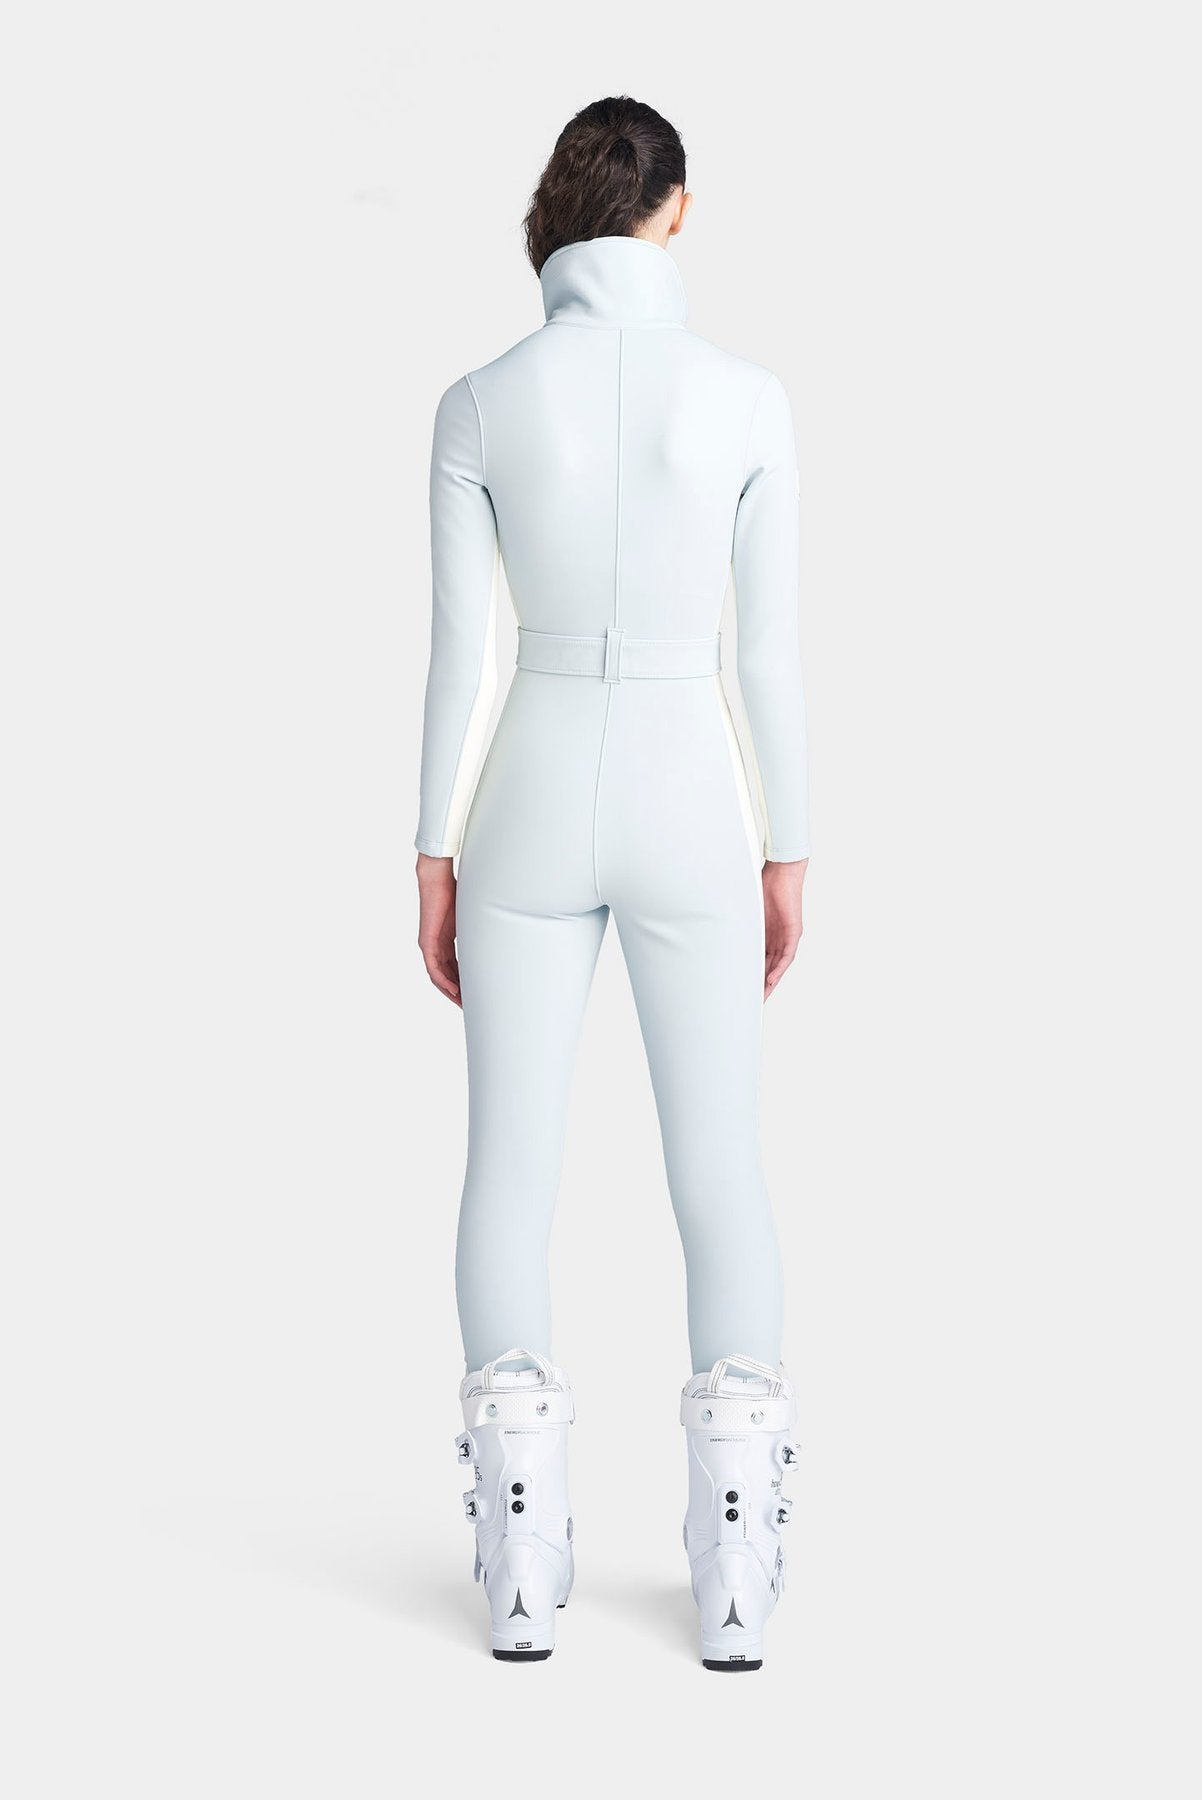 The Aspen Ski Suit - Artic Ice